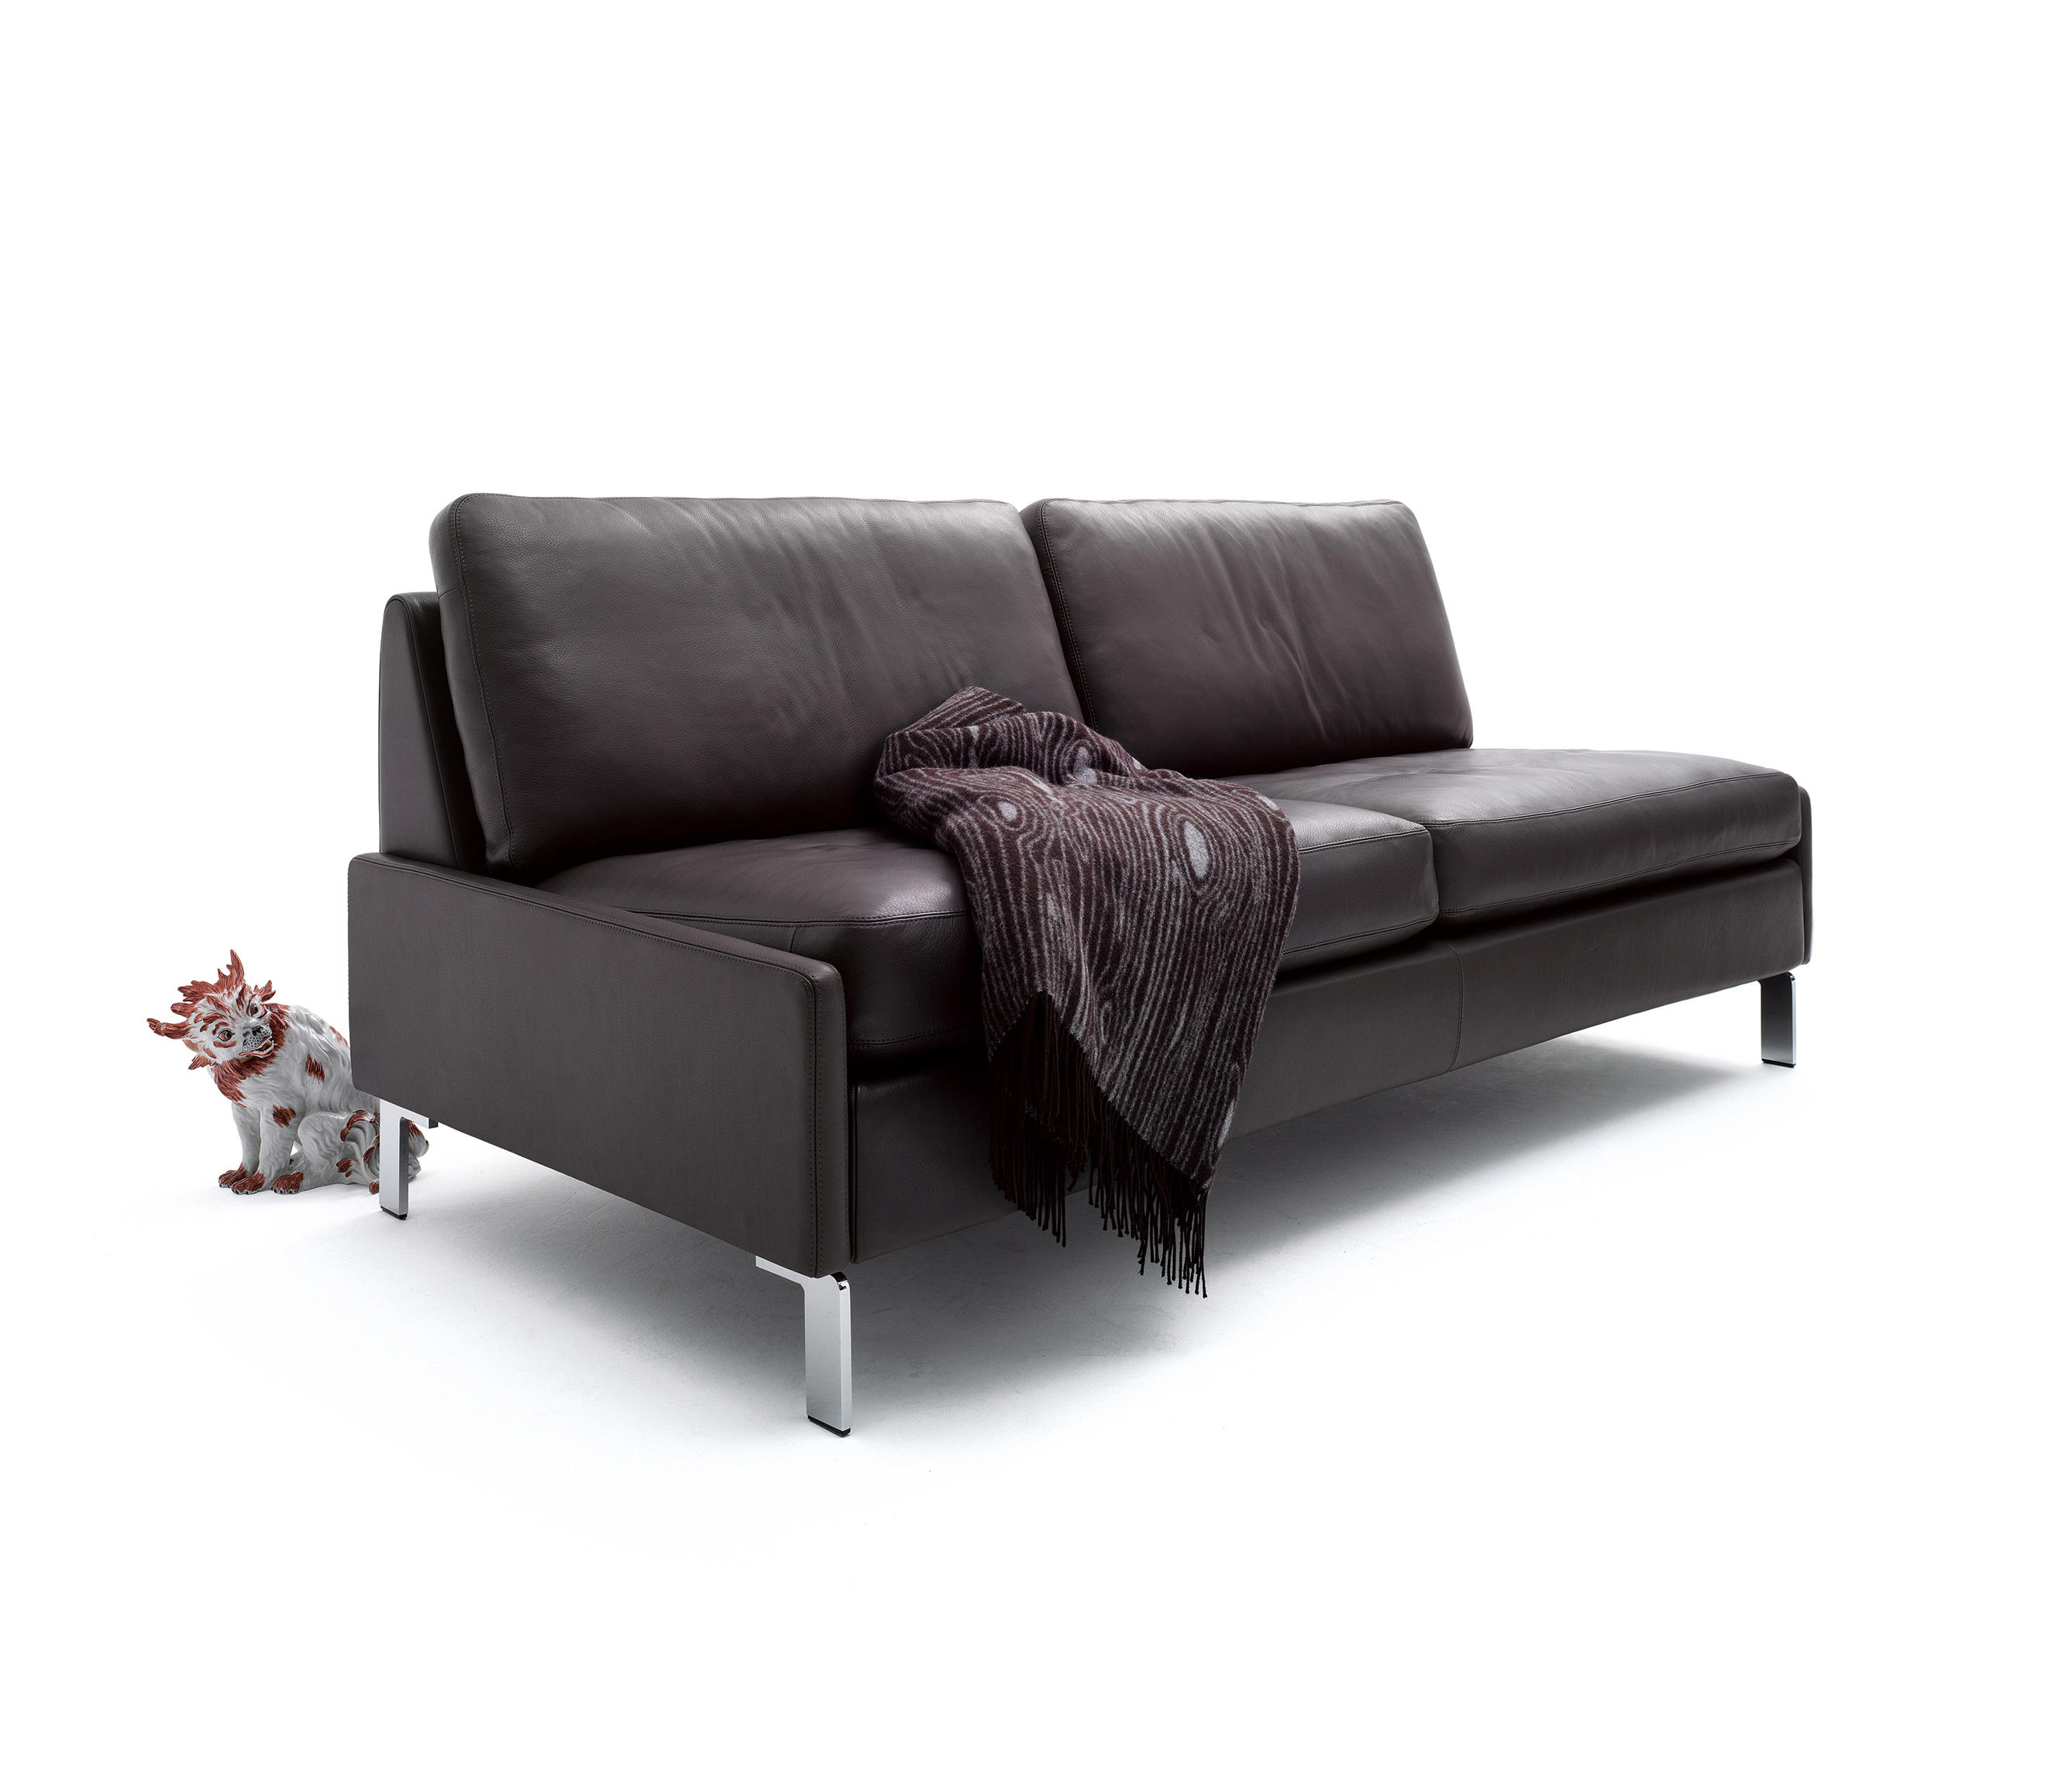 Lounge sofa leder  CONSETA - Lounge sofas from COR | Architonic